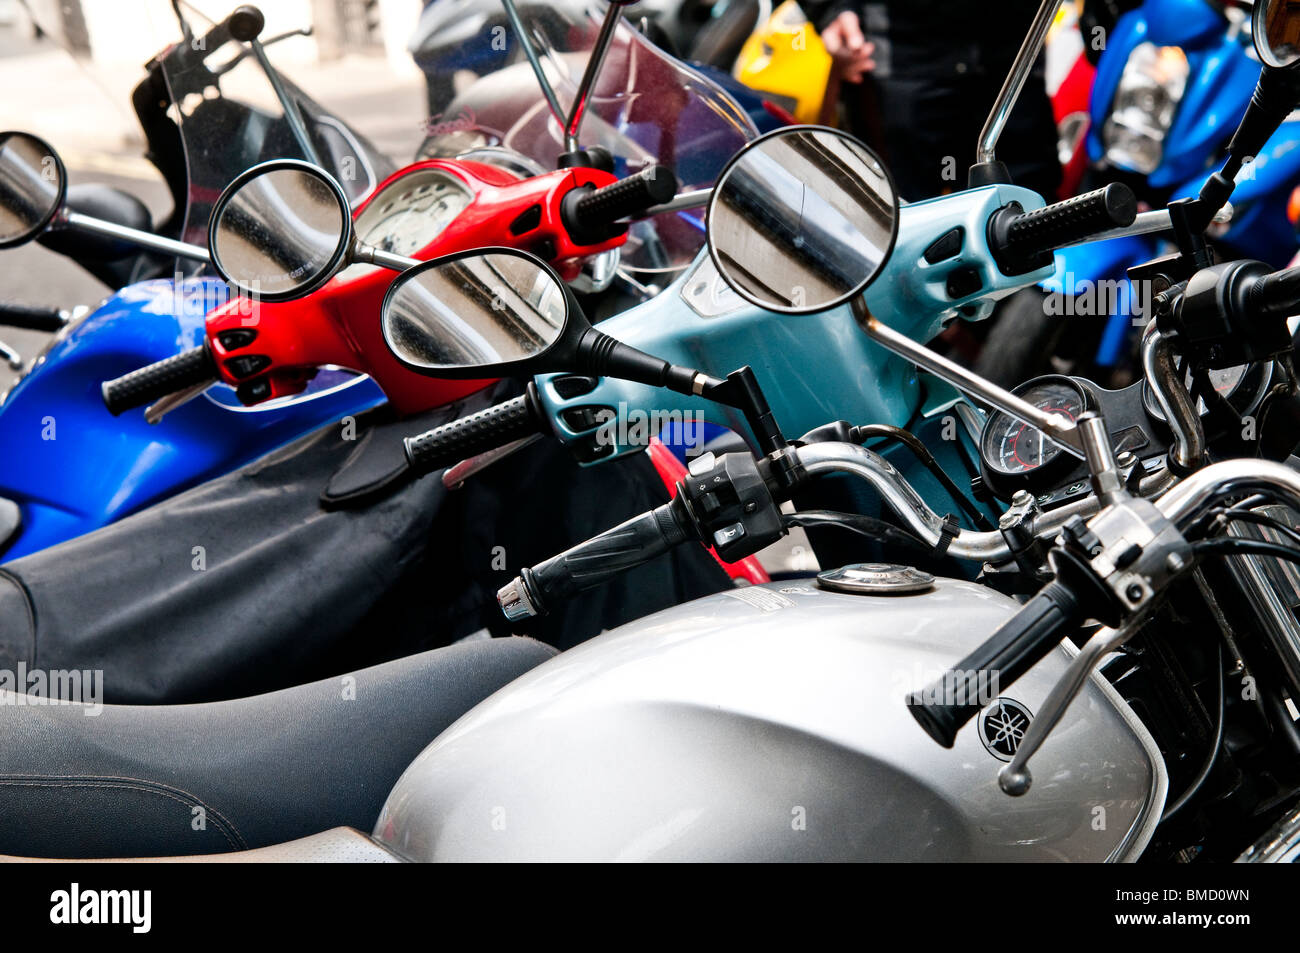 Motorcycle wing mirrors - Stock Image